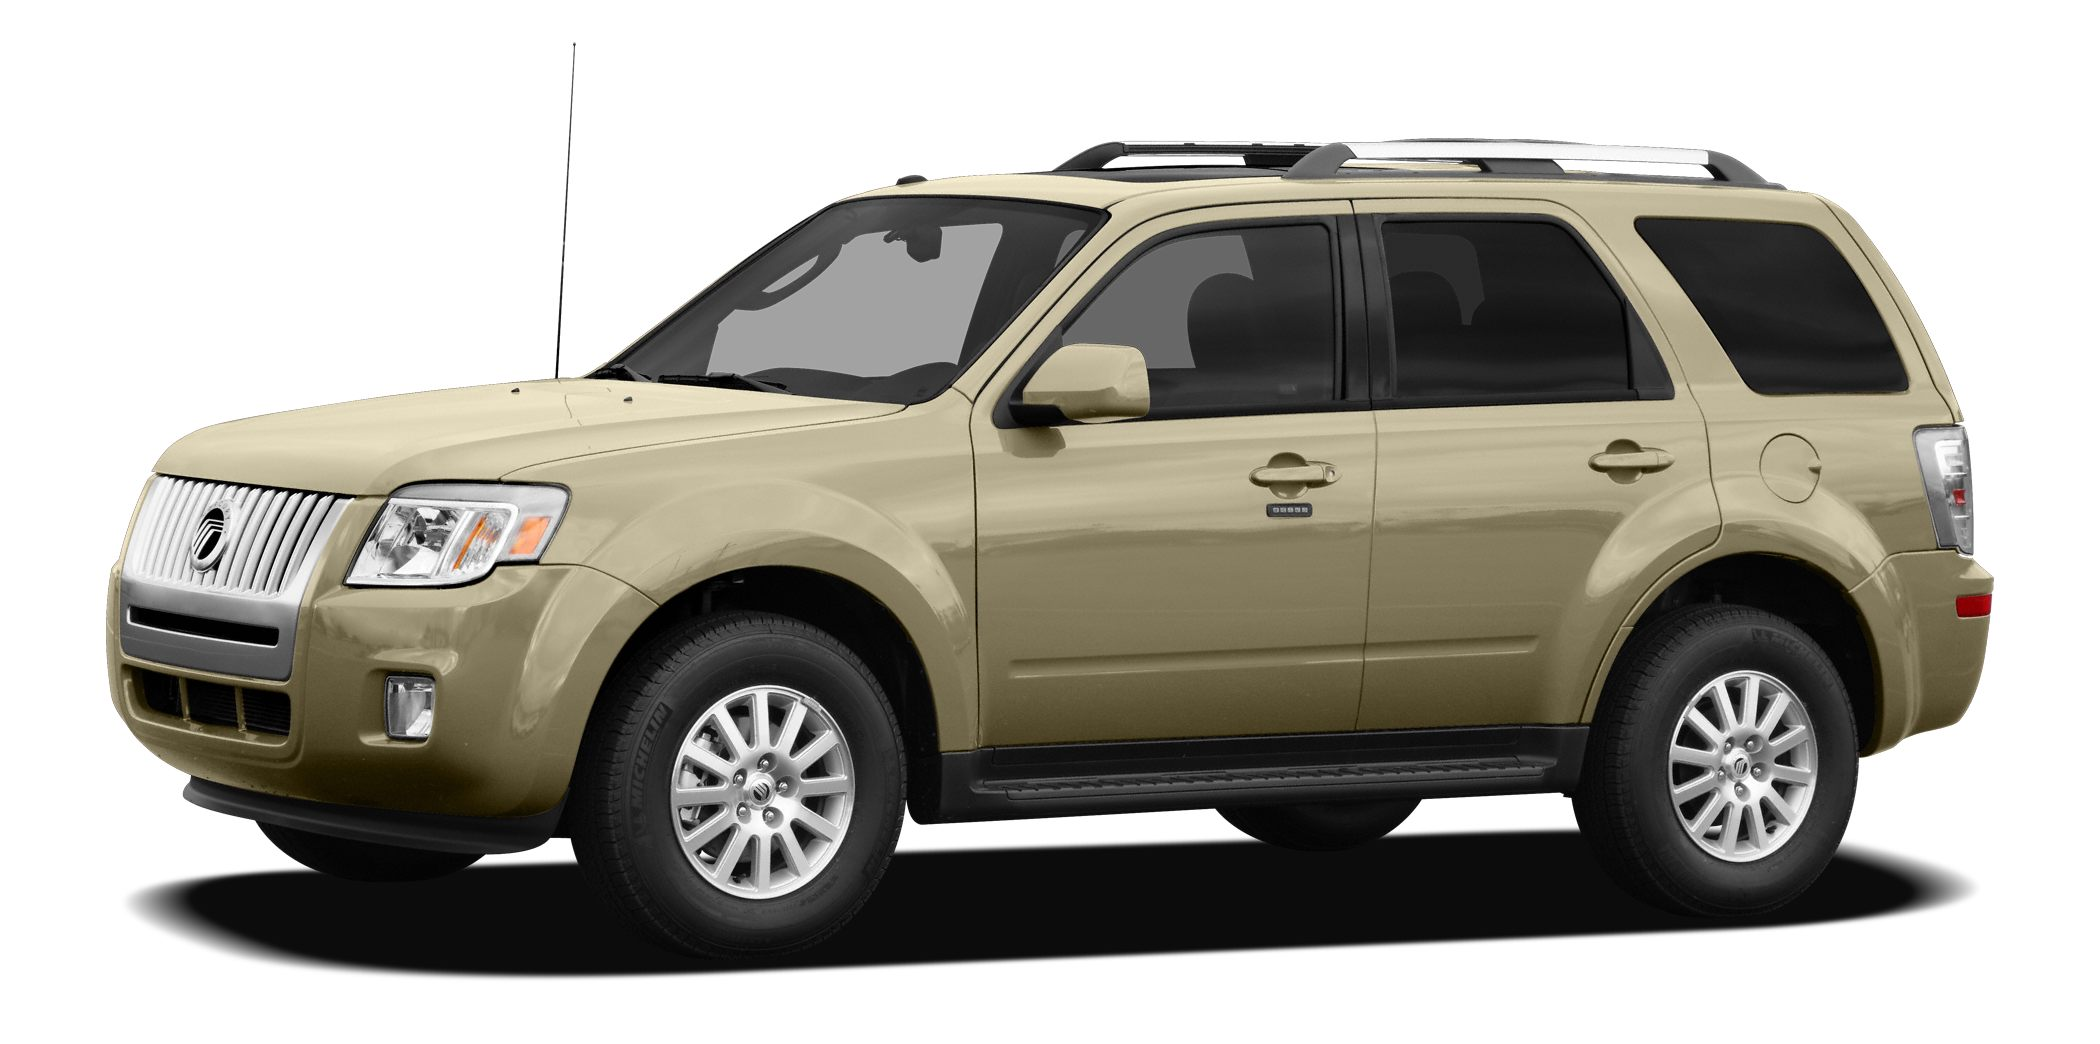 2010 Mercury Mariner Premier PREMIERLEATHERLOCAL TRADE INPLEASE CALL FOR DETAILSNO ACCIDENT